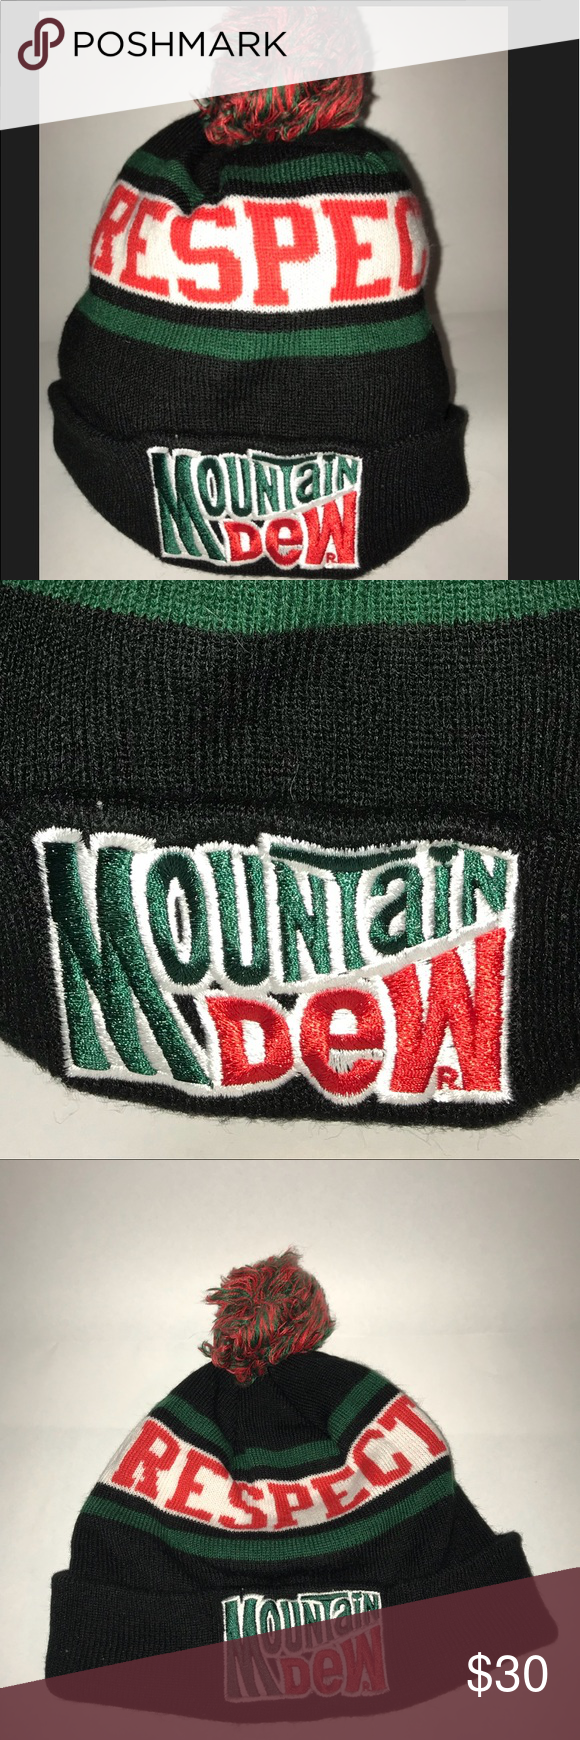 cfeaea19512 Mountain Dew Beanie Hat Show your respect with this black